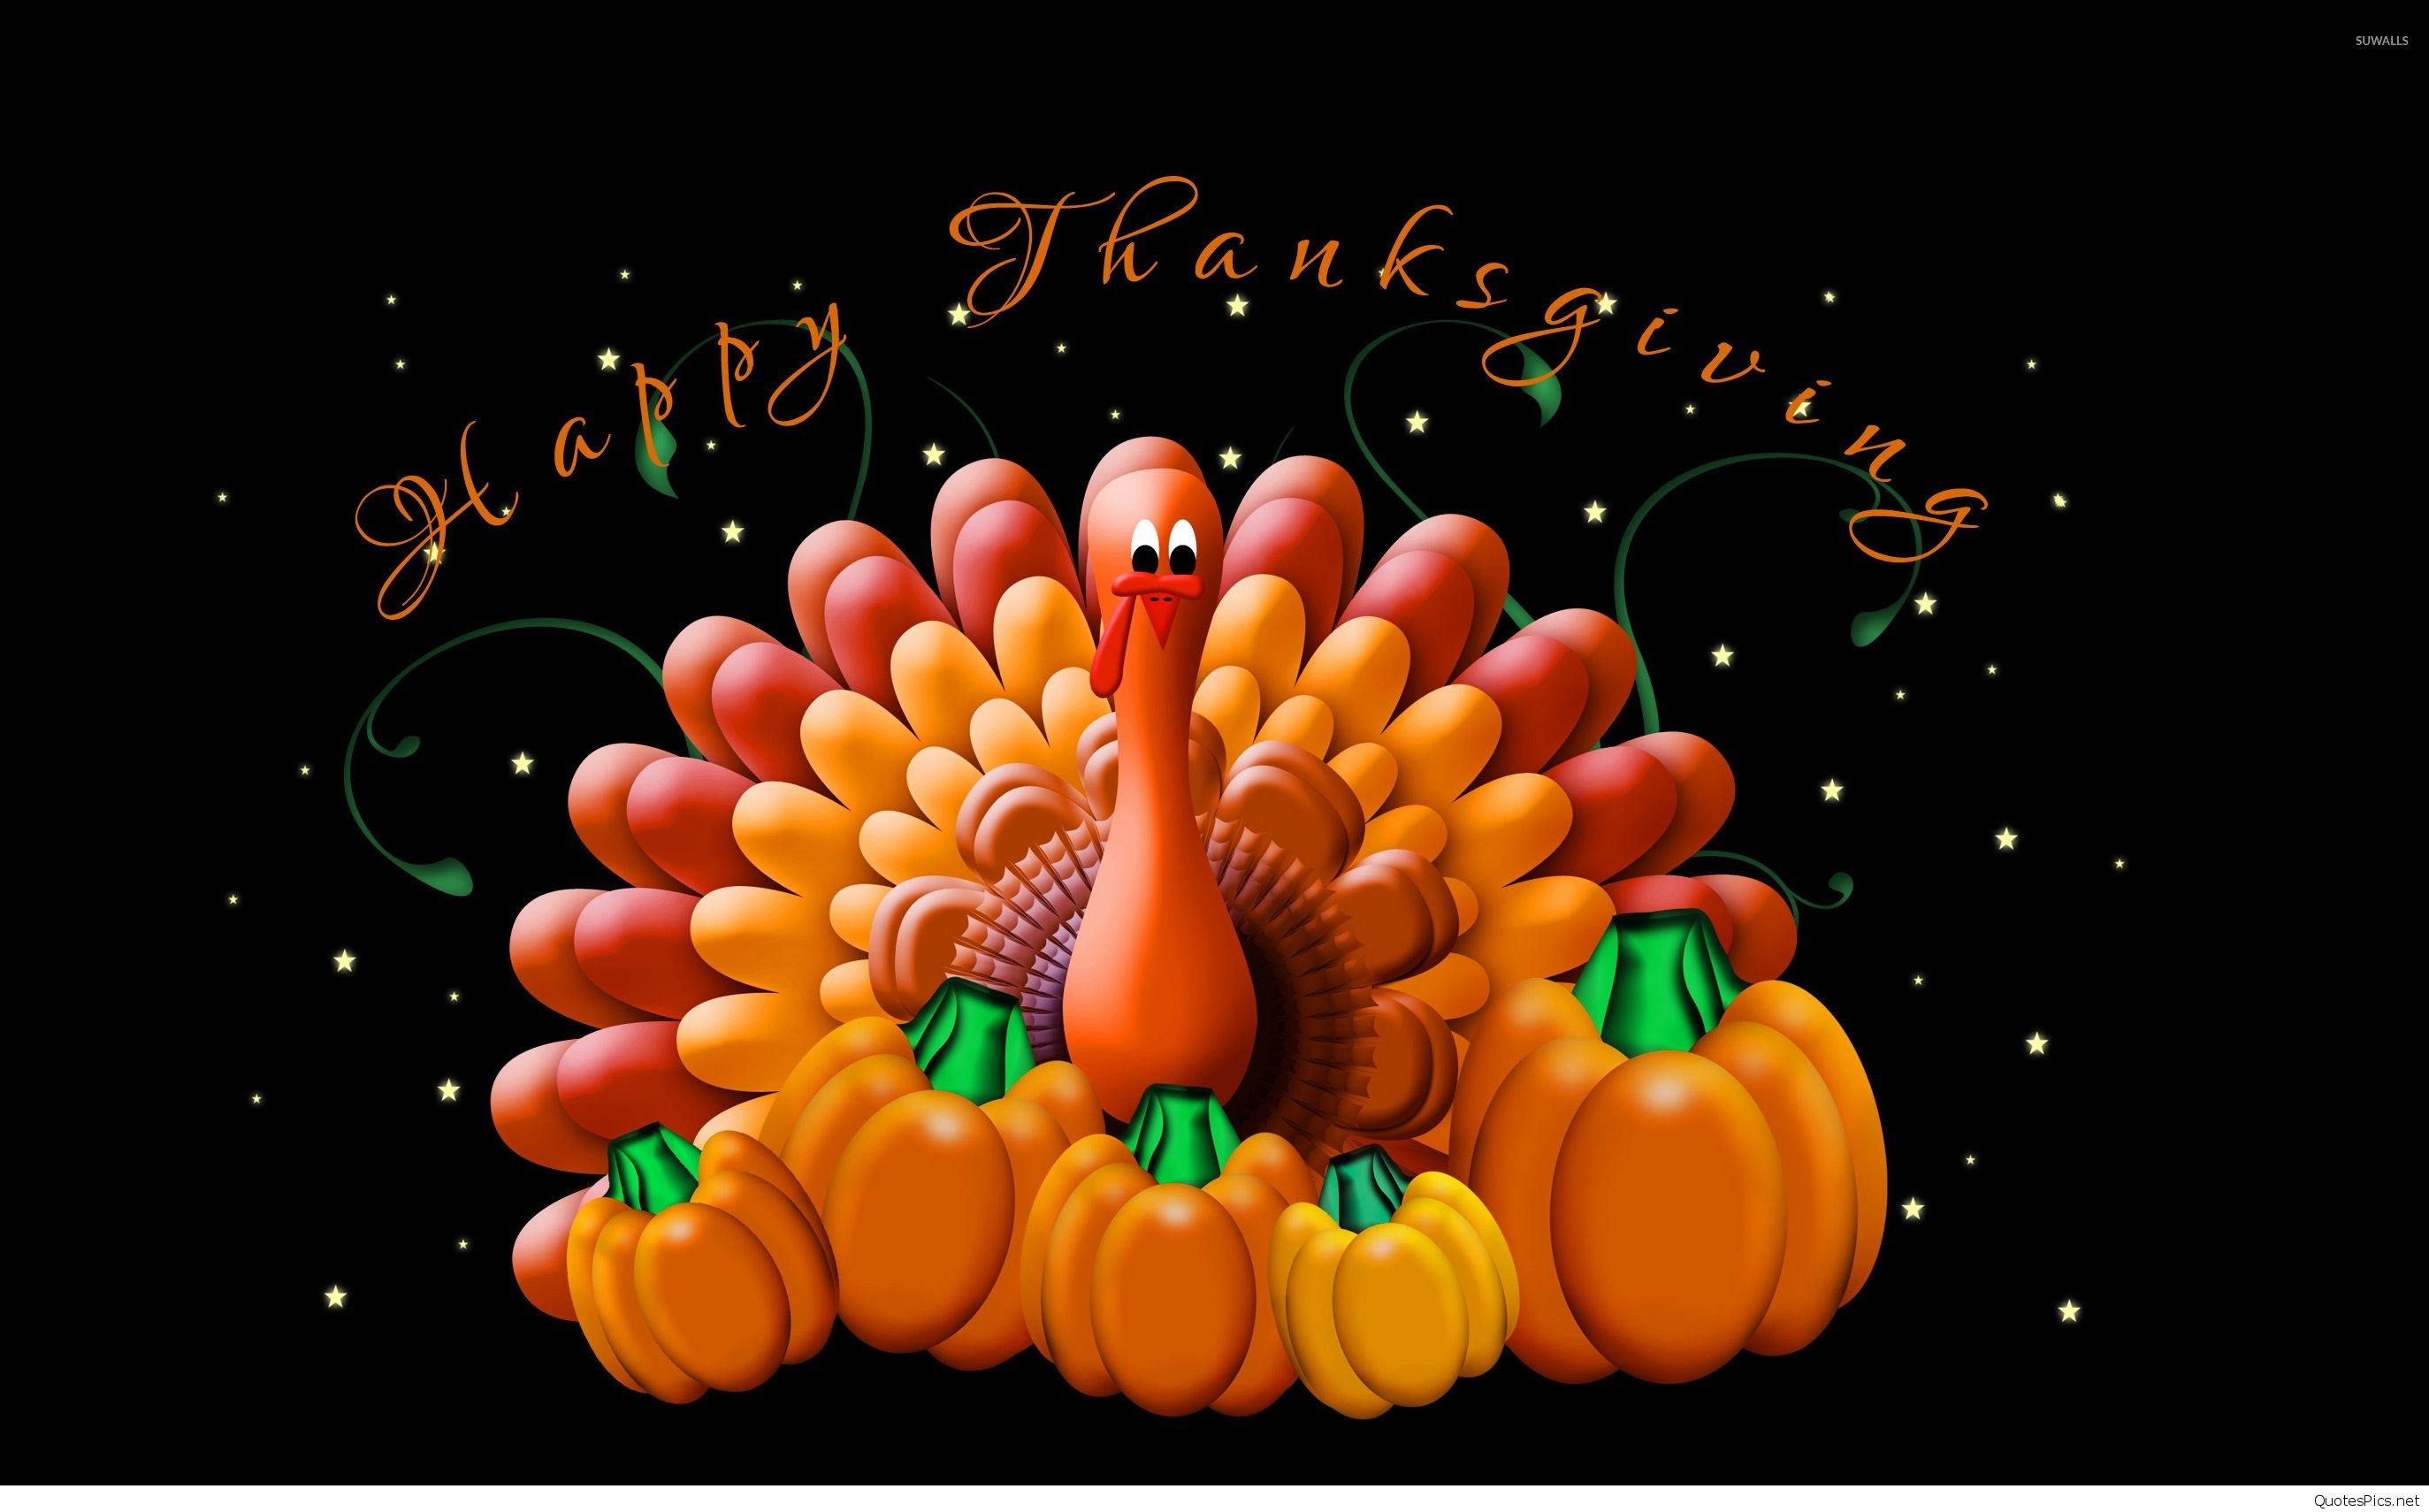 Thanksgiving 2017 Quotes  Cute Happy Thanksgiving wallpapers quotes images 2016 2017